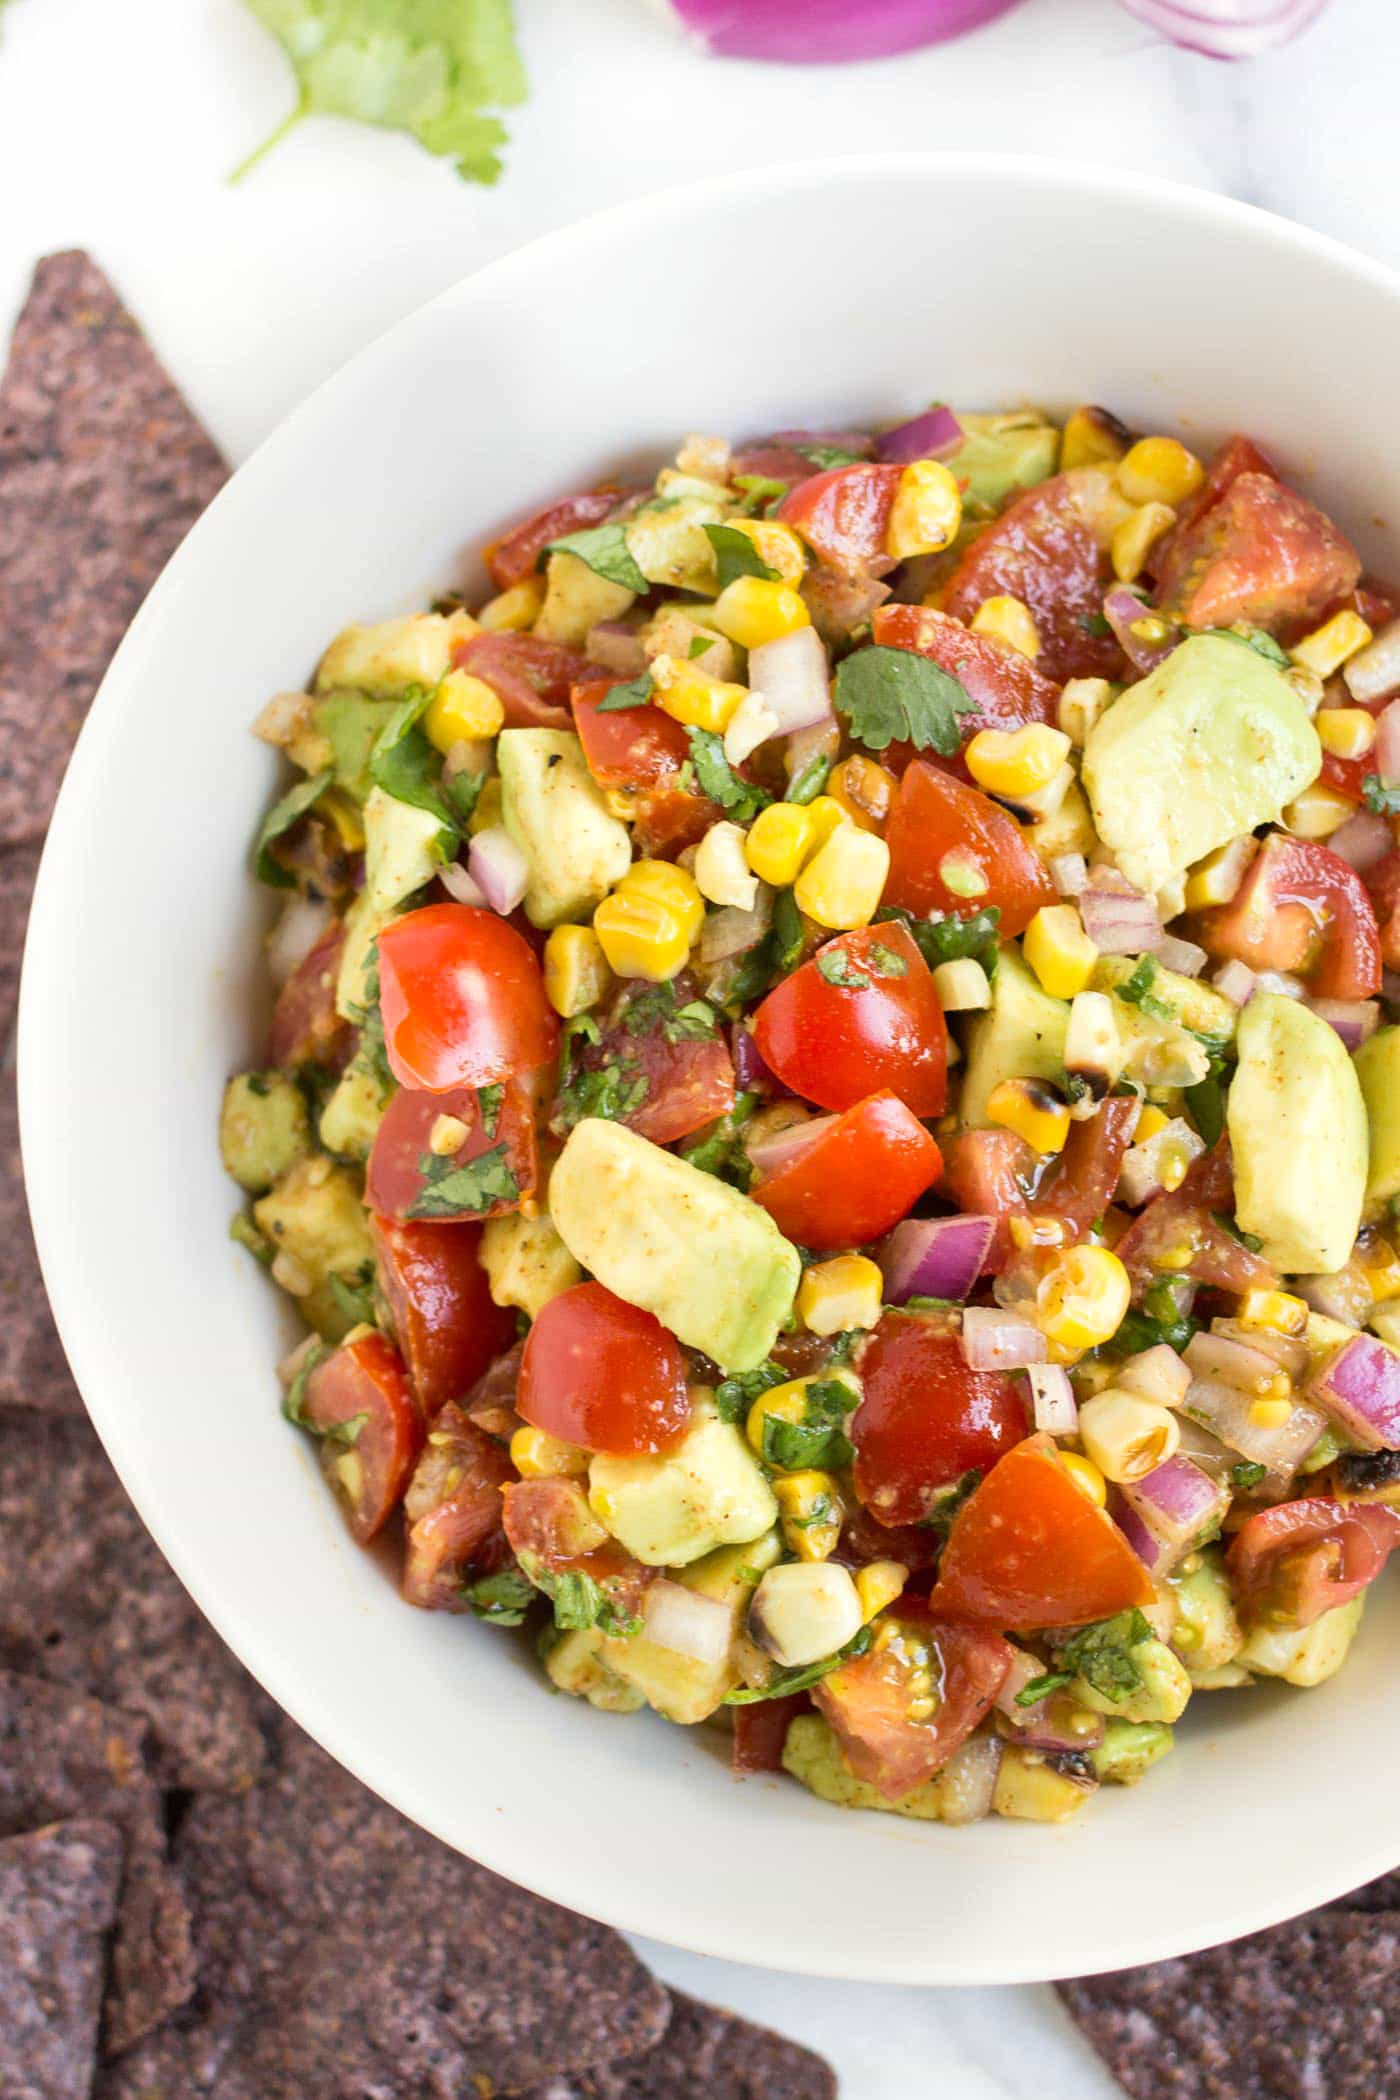 This simple grilled corn + avocado salsa is one of the BEST dips I've ever had!